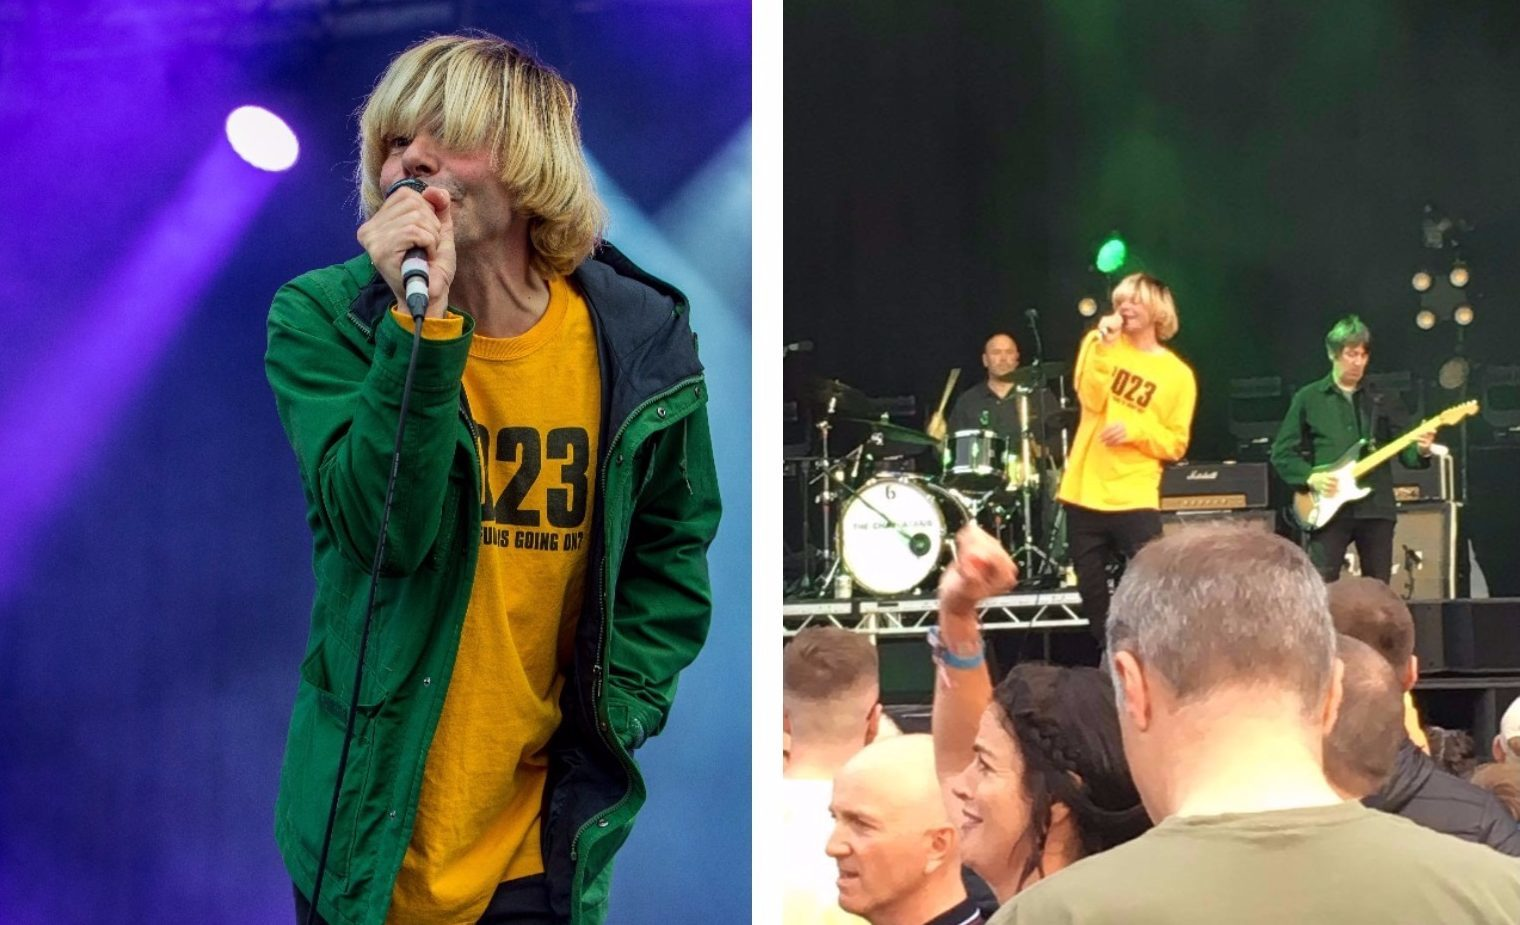 Tim Burgess of The Charlatans donning the 2023 shirt at Carnival 56.